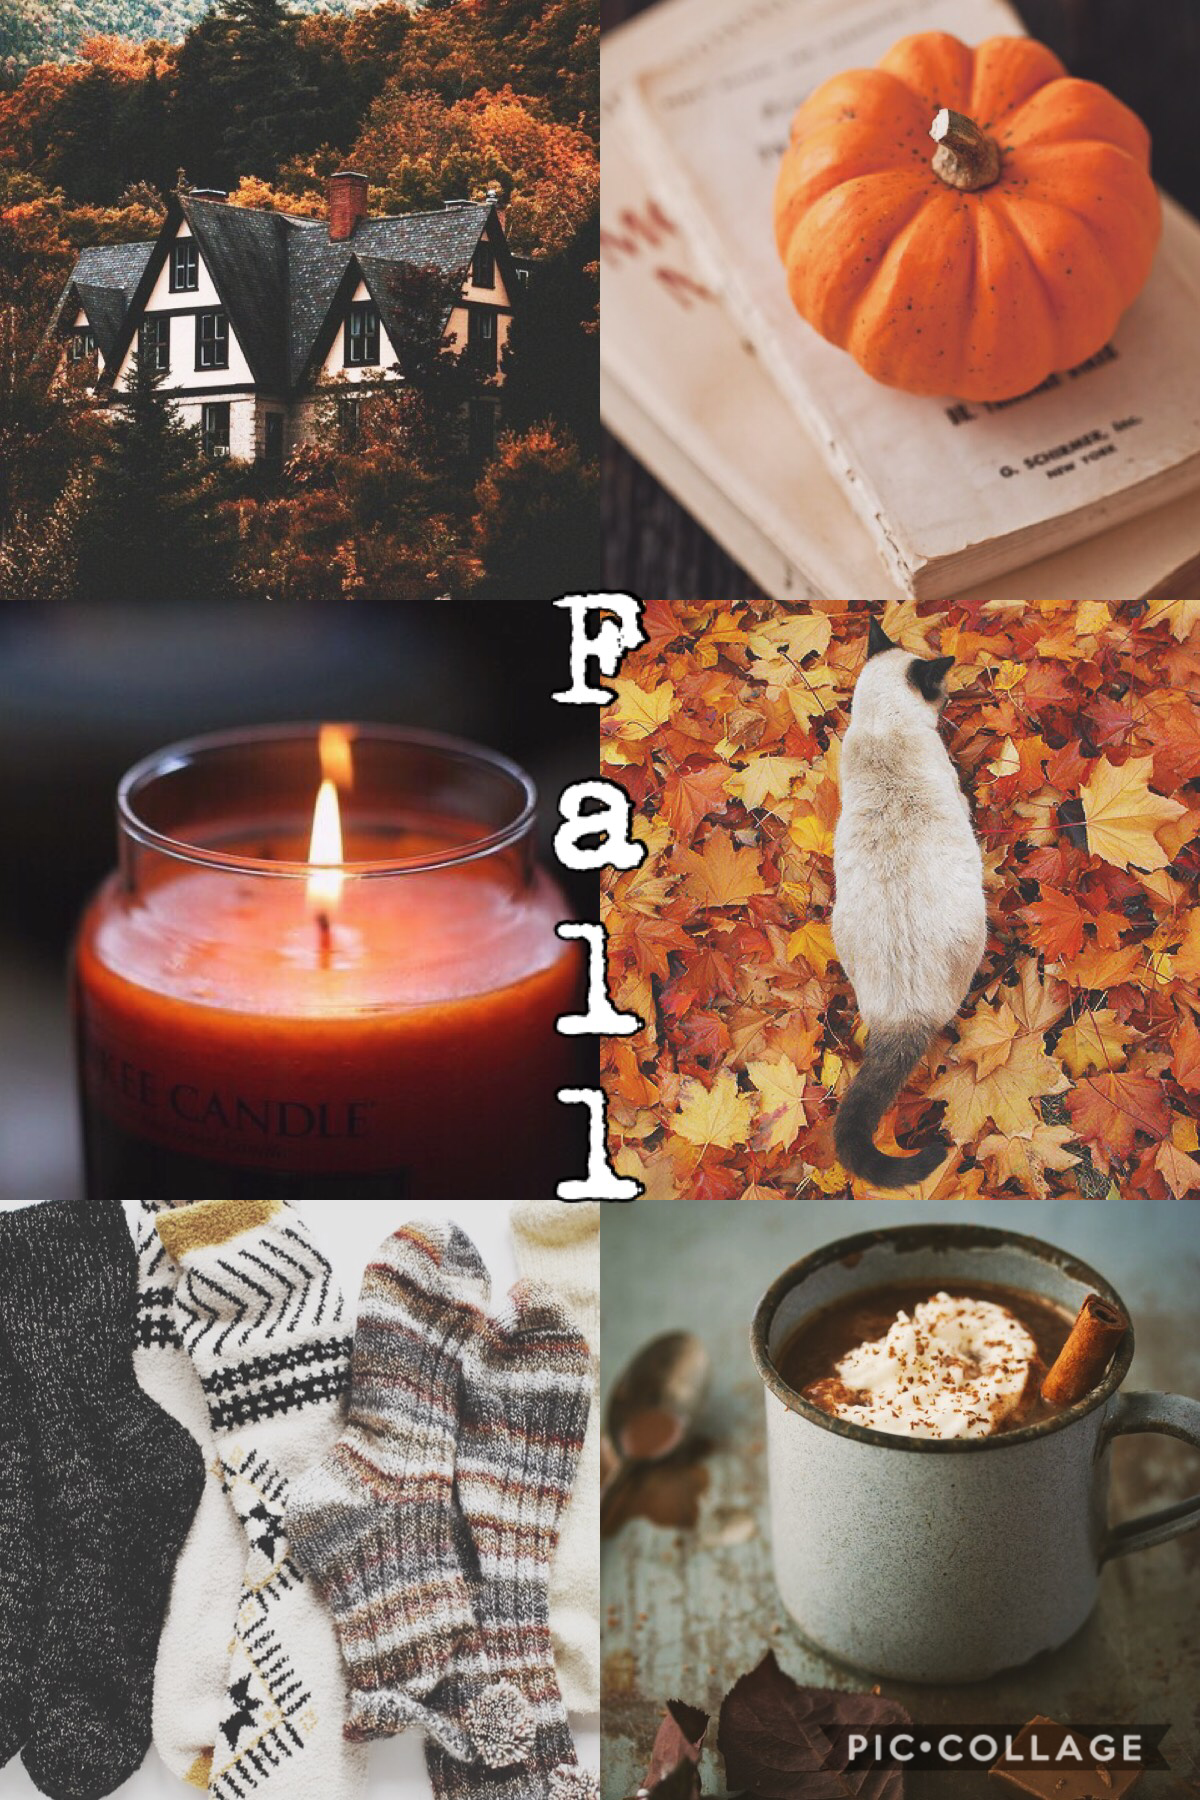 Not totally satisfied with this. 🤷🏻♀️ 🍁 ☕️ 🧦 🏡 🐈 🕯 🎃 Even tho it's still fall for another month, I really need to finish posting things for it since I'll be doing Christmas stuff soon. 😆 🗓 🎄 It's National Play Monopoly Day! 🎲